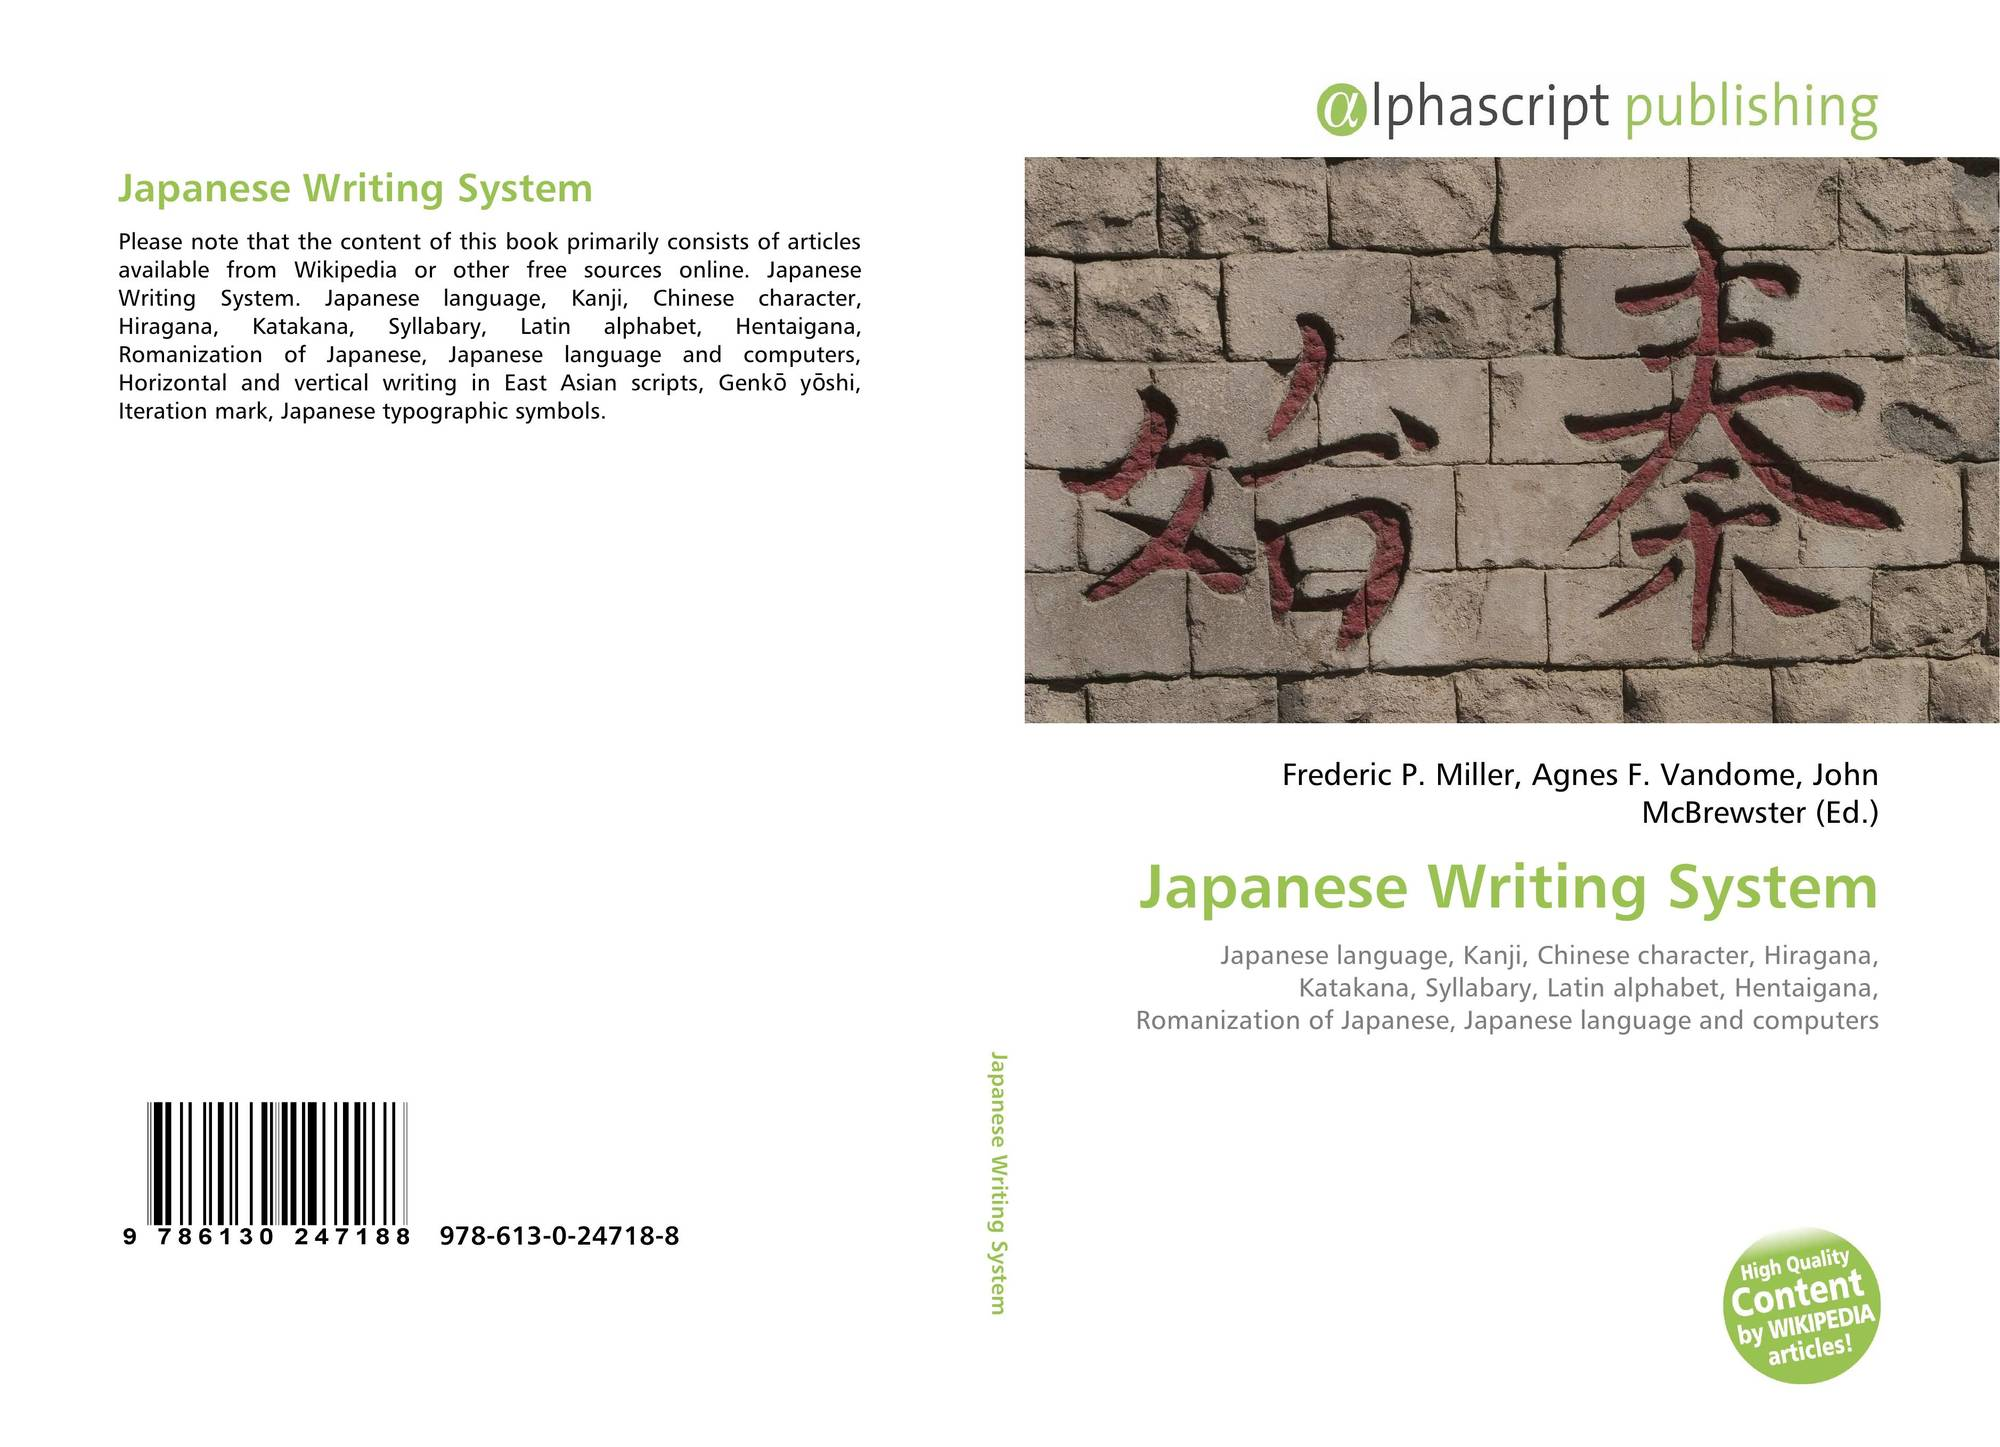 diference in writing manyoshu and kokinshu essay Nara period 710-794 japanese literature traces its beginnings to oral traditions that were first recorded in written form in the early eighth century after a writing system was introduced from china.